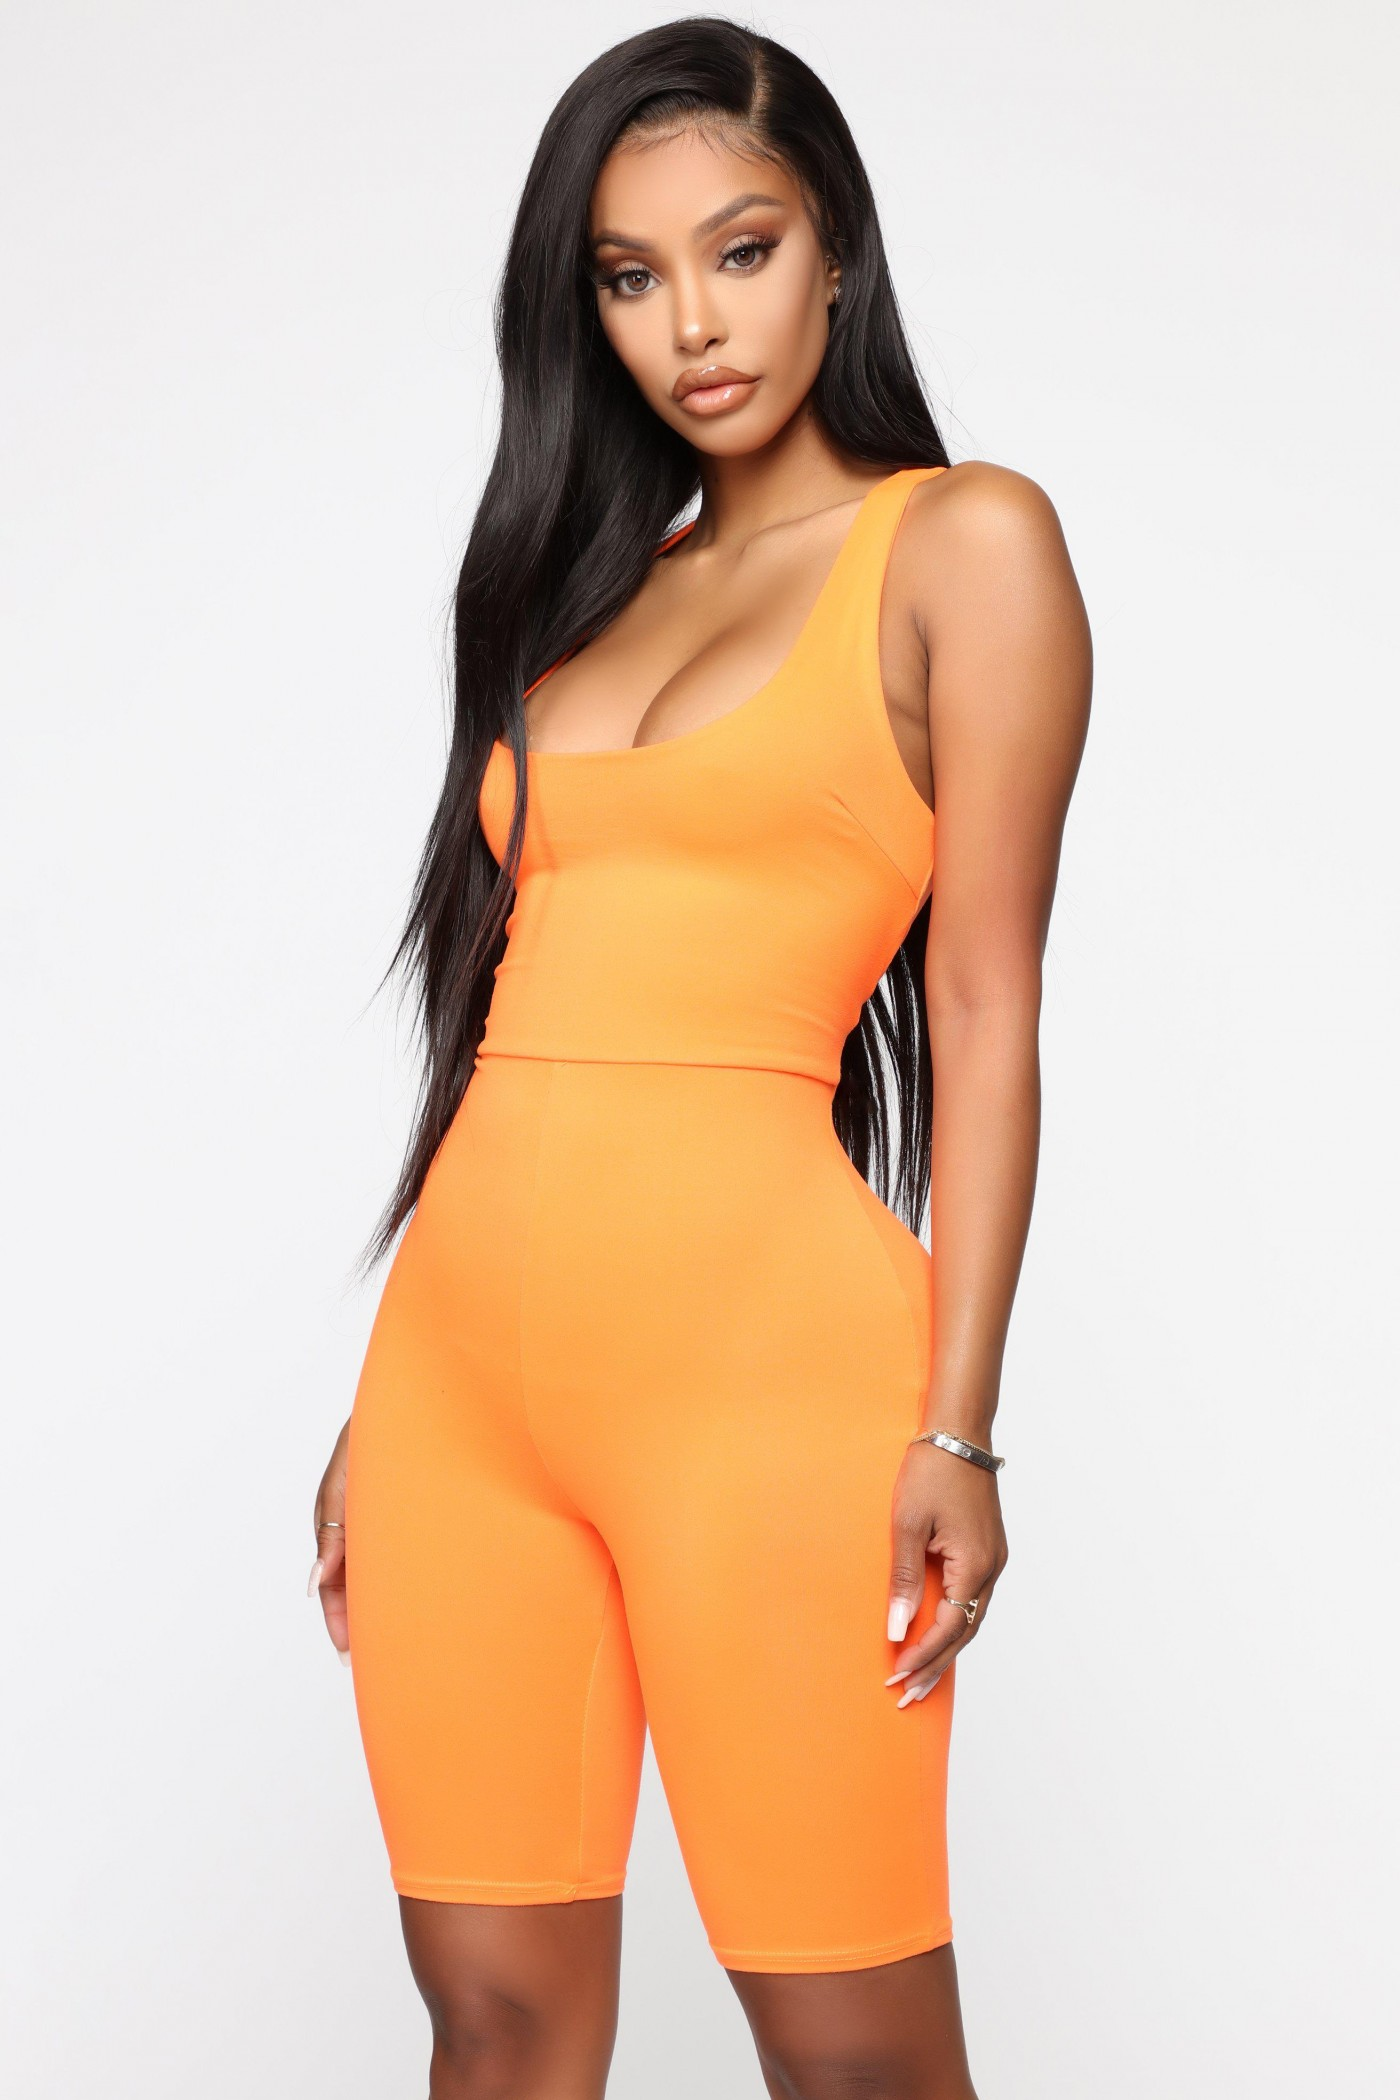 Fashion Nova trends